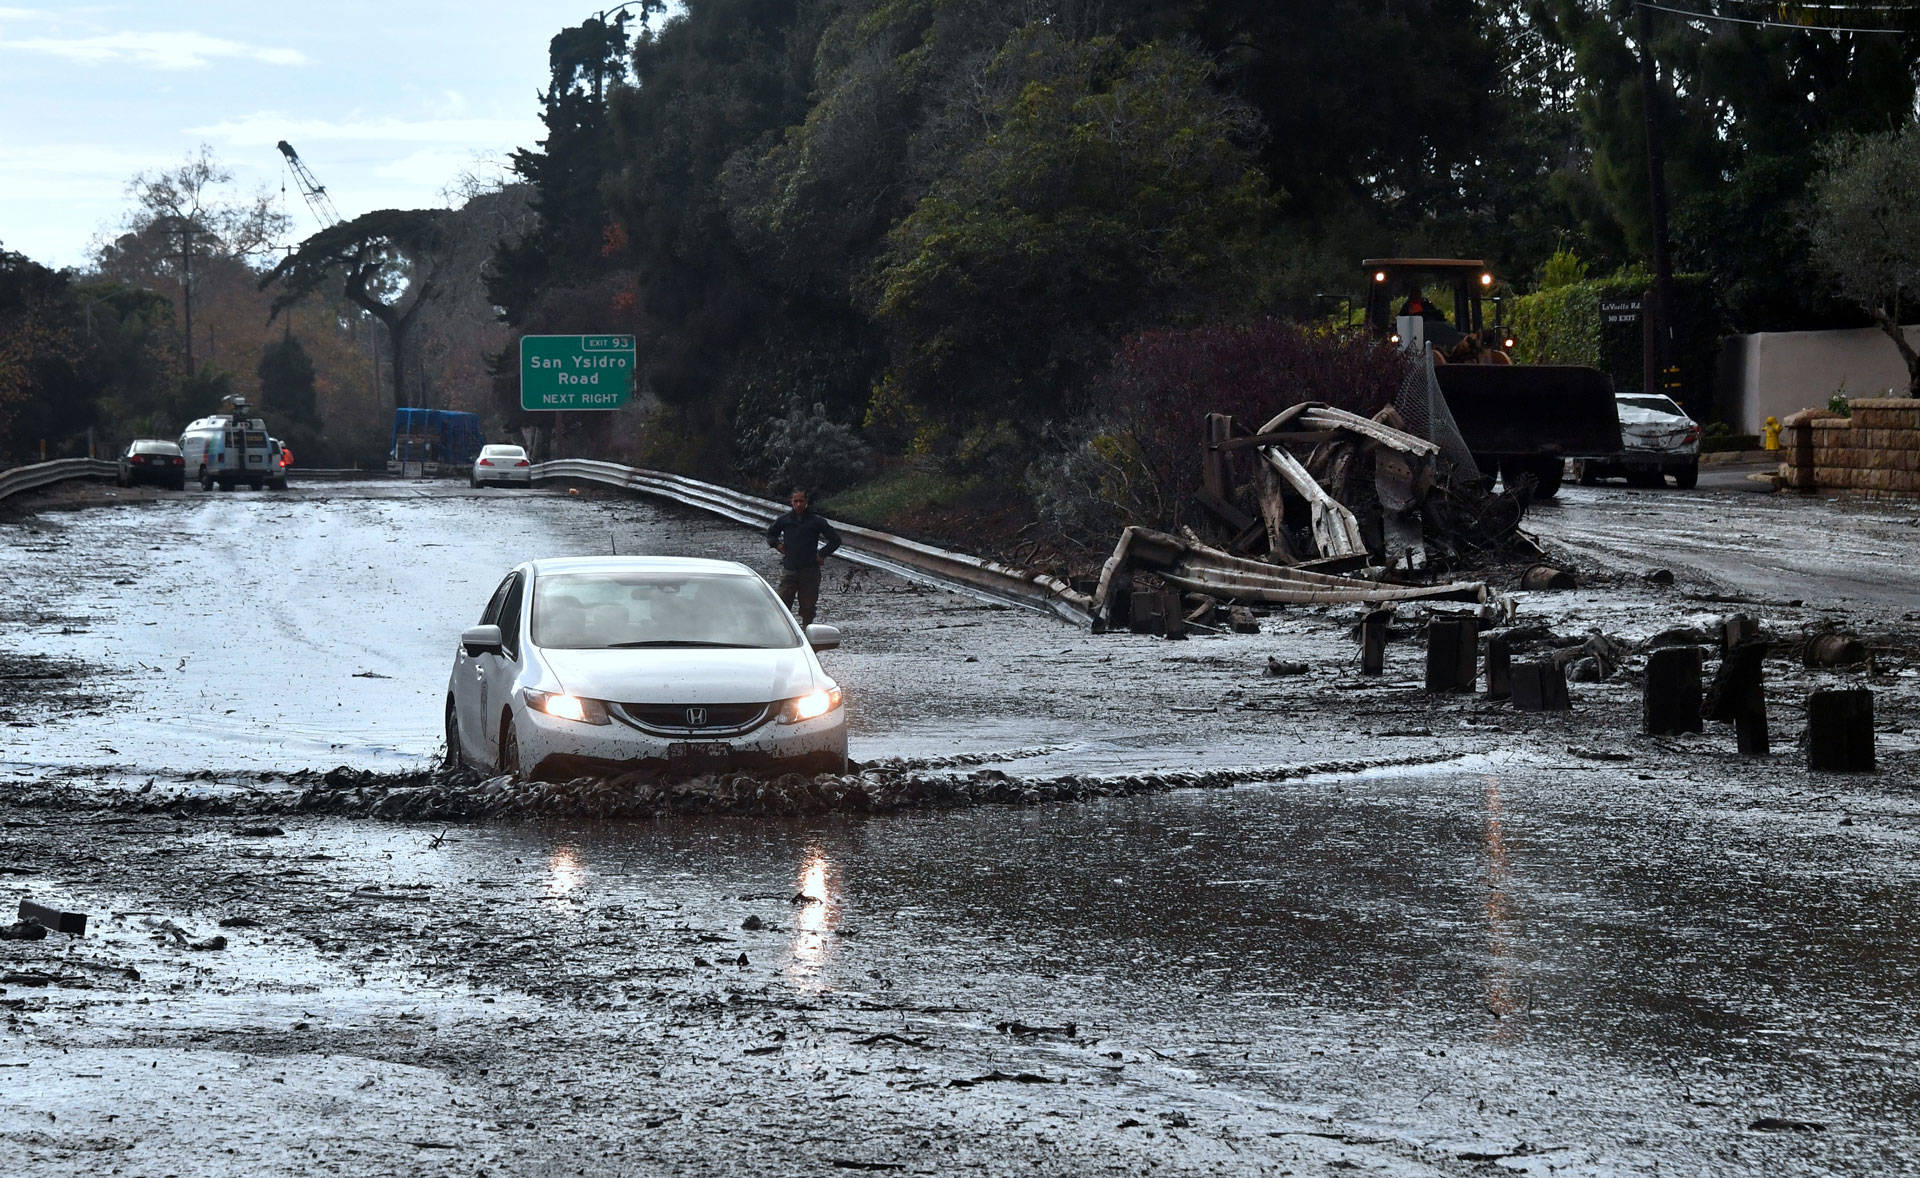 A vehicle drives across the flooded US 101 freeway in Montecito on January 9, 2018. FREDERIC J. BROWN/AFP/Getty Images